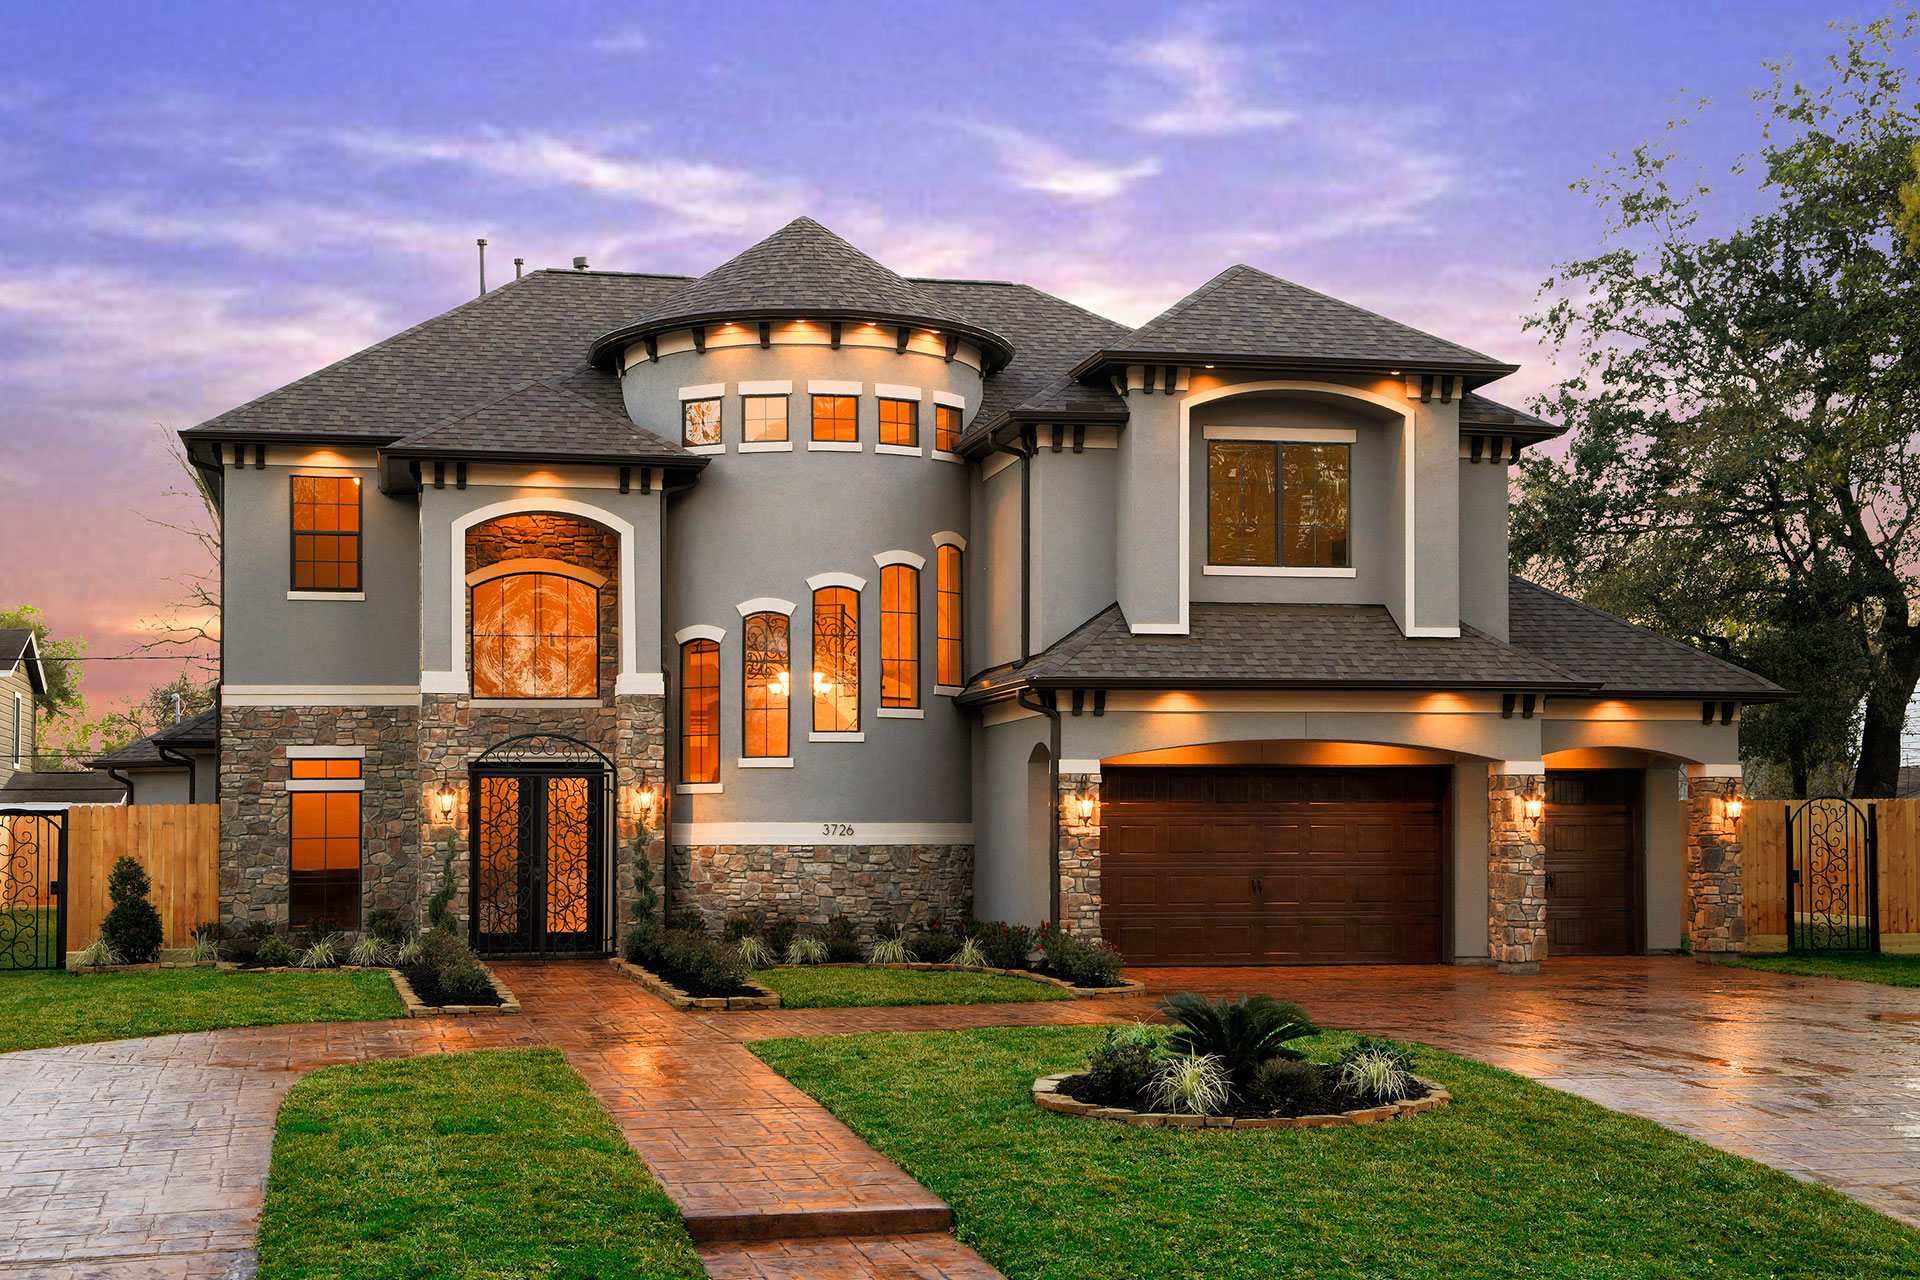 Mayberry homes houston homemade ftempo for Small home builders houston